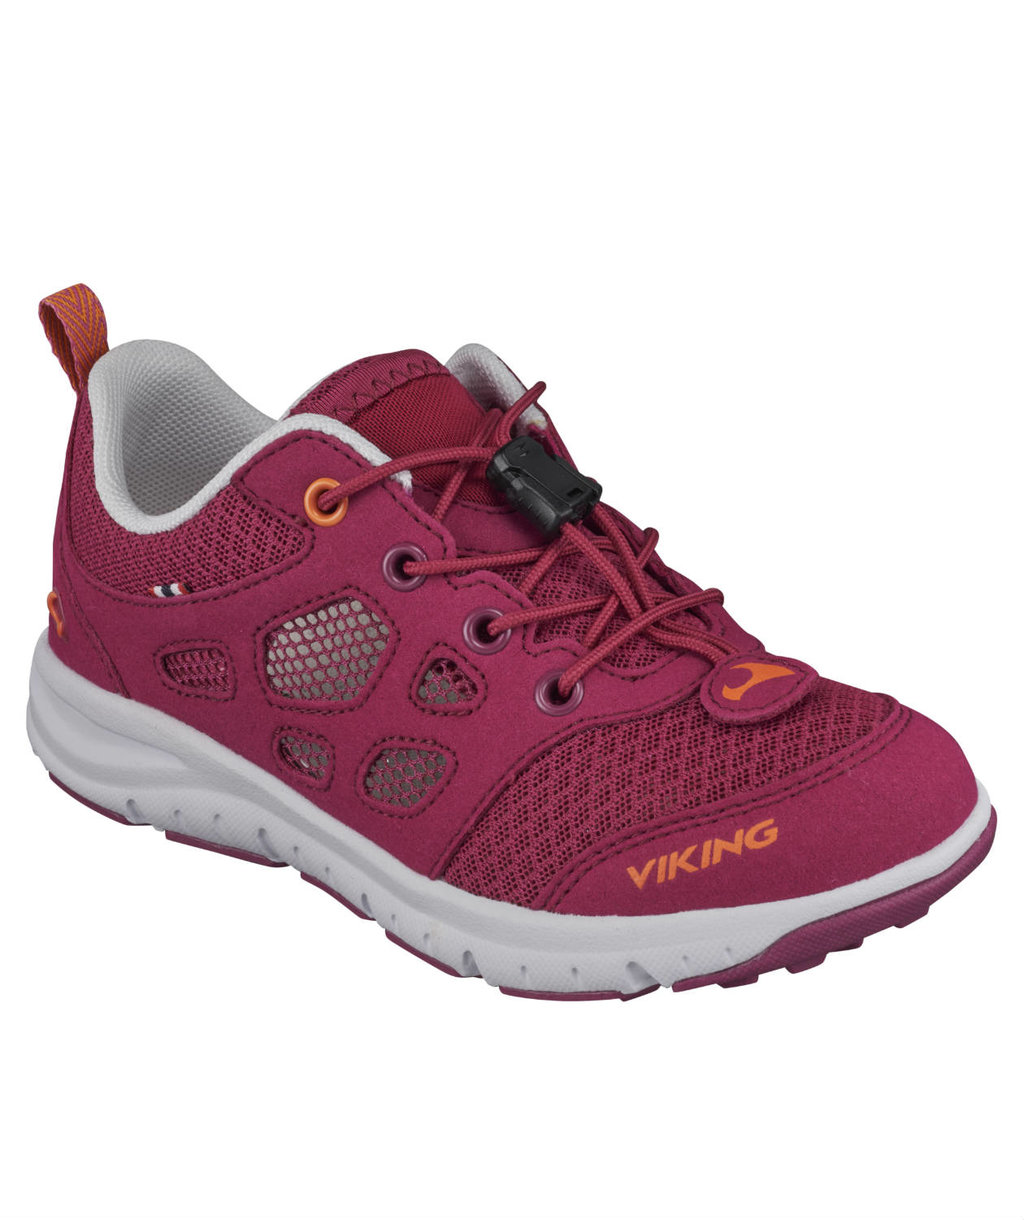 Viking Saratoga Air Sneakers für Kinder, Fuchsie/Orange